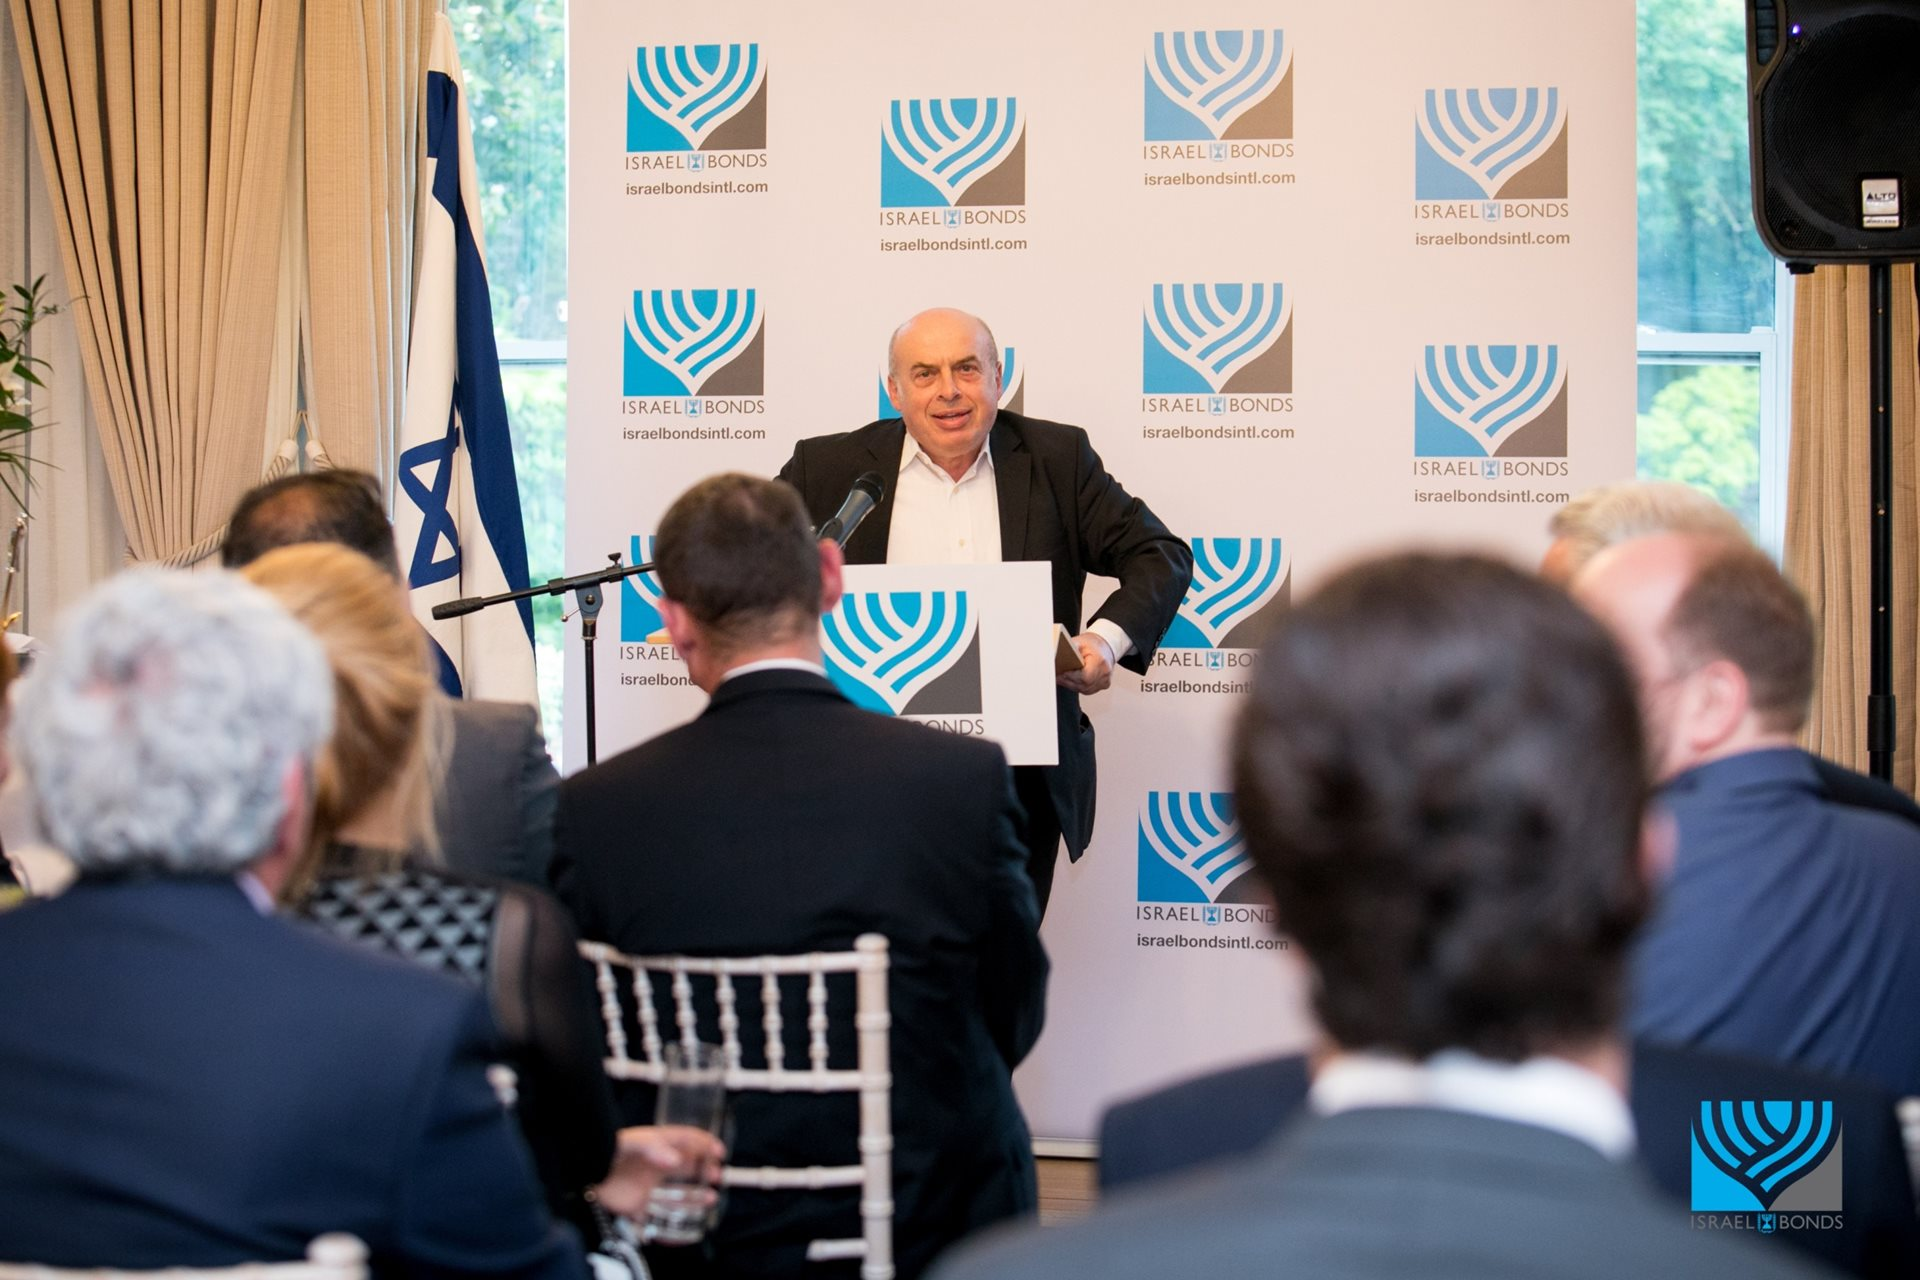 Sharansky-2.jpg